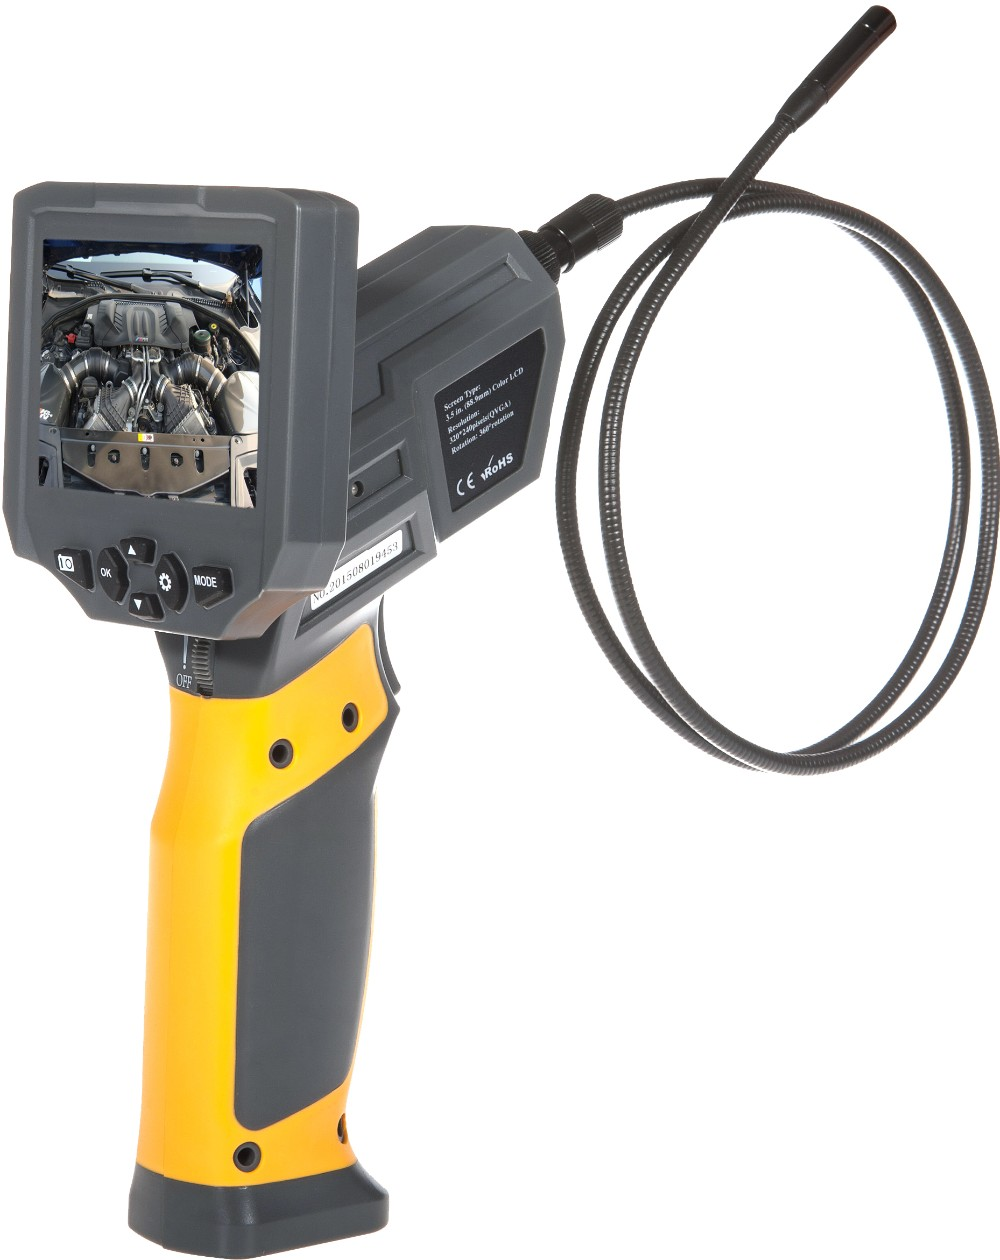 High quality HT-660 Digital Portable Video Borescope inspection snake camera industrial used